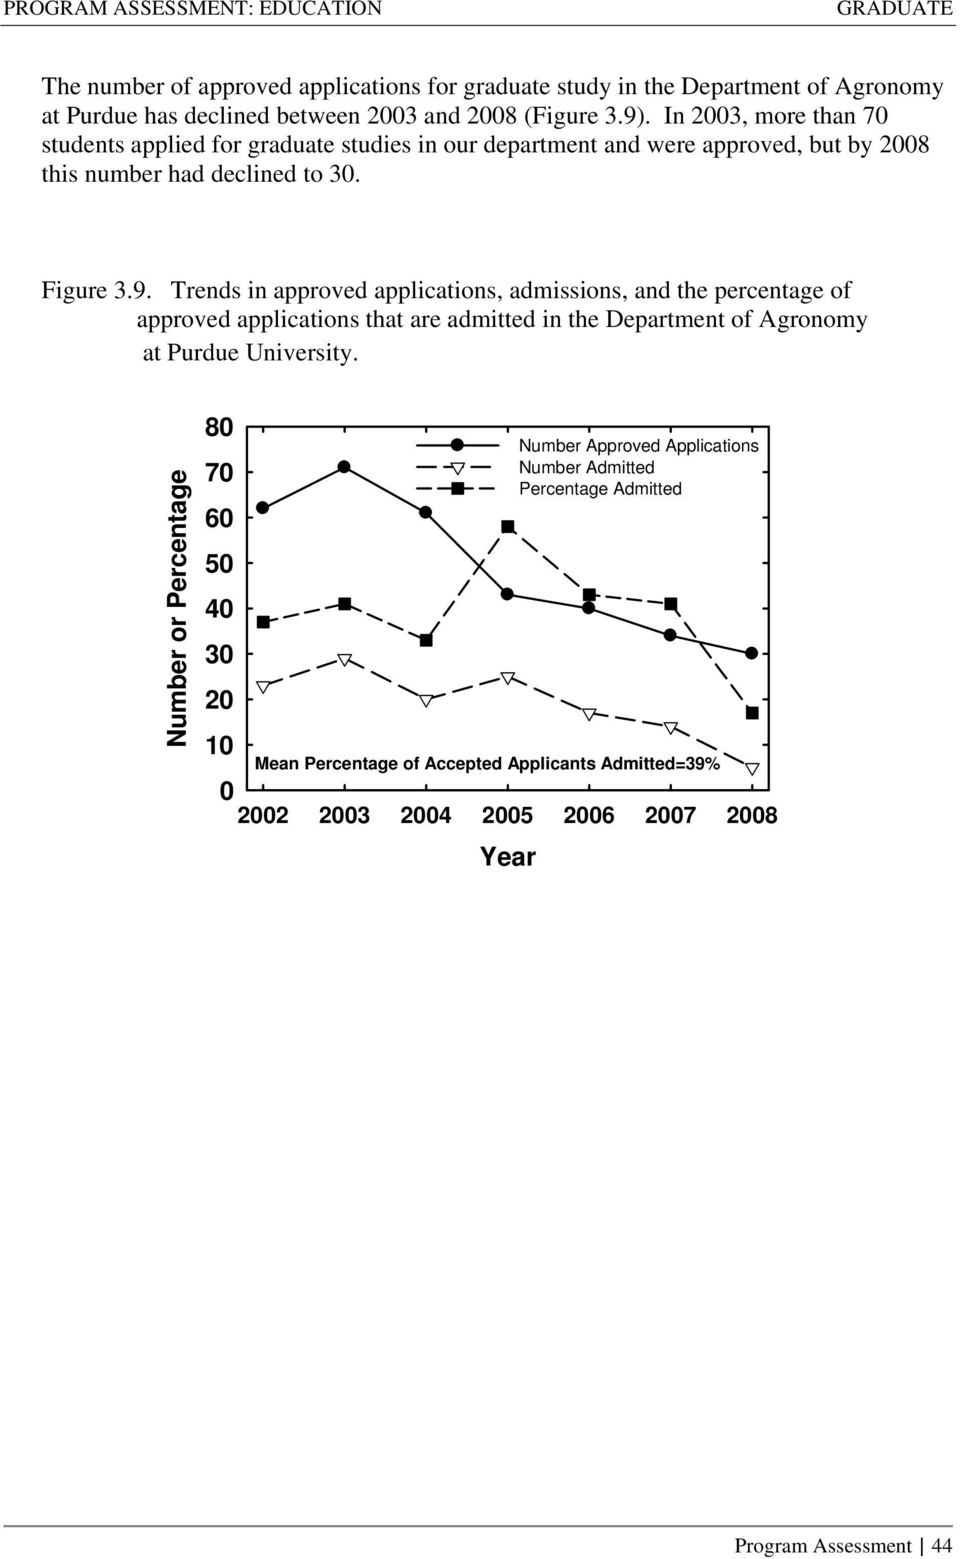 Trends in approved applications, admissions, and the percentage of approved applications that are admitted in the Department of Agronomy at Purdue University.